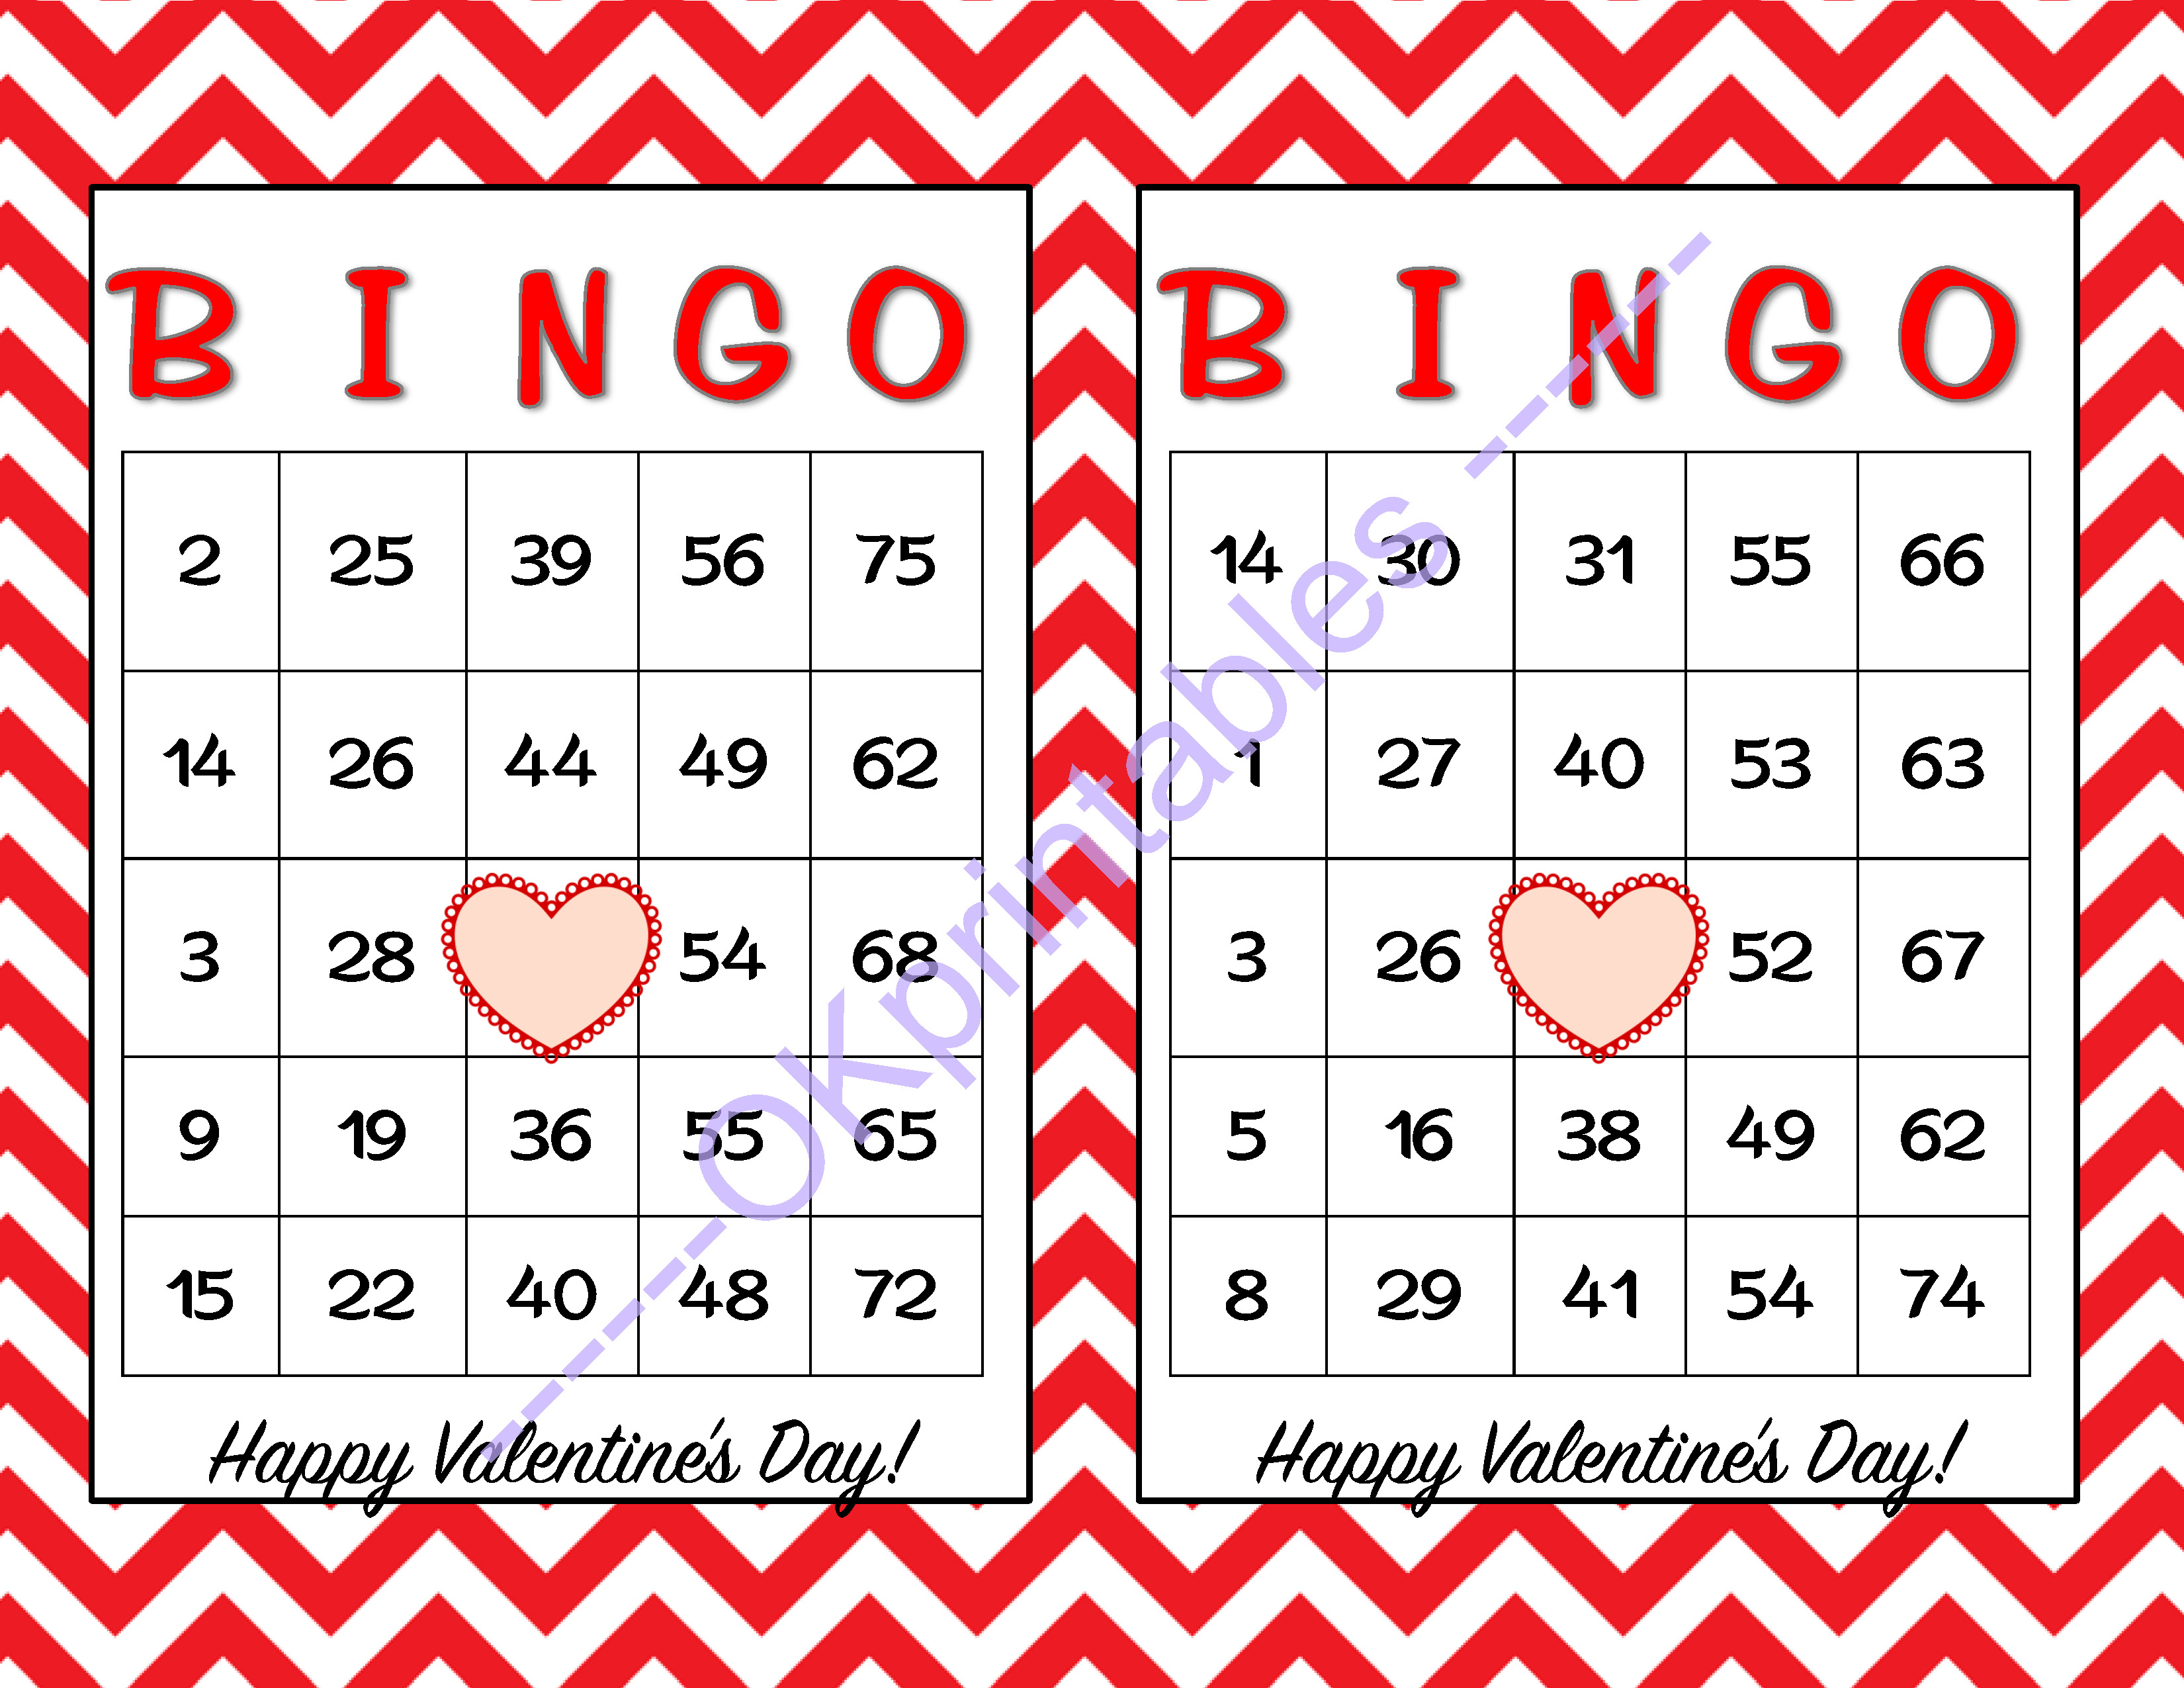 60 Happy Valentines Day Bingo Cards